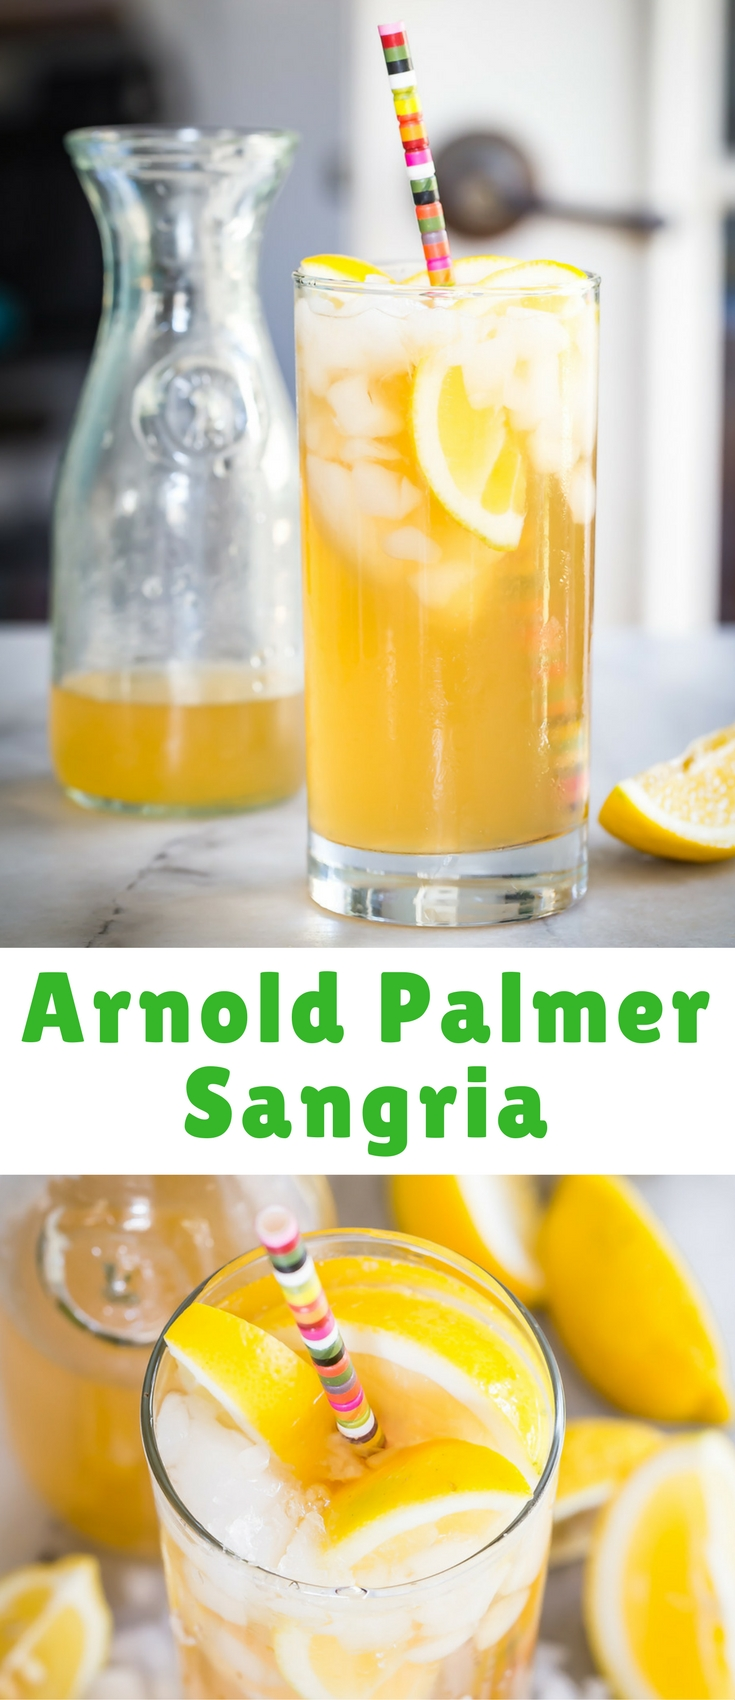 A really refreshing iced tea and lemonade drink with white wine, made just like the famous Arnold Palmer drink.